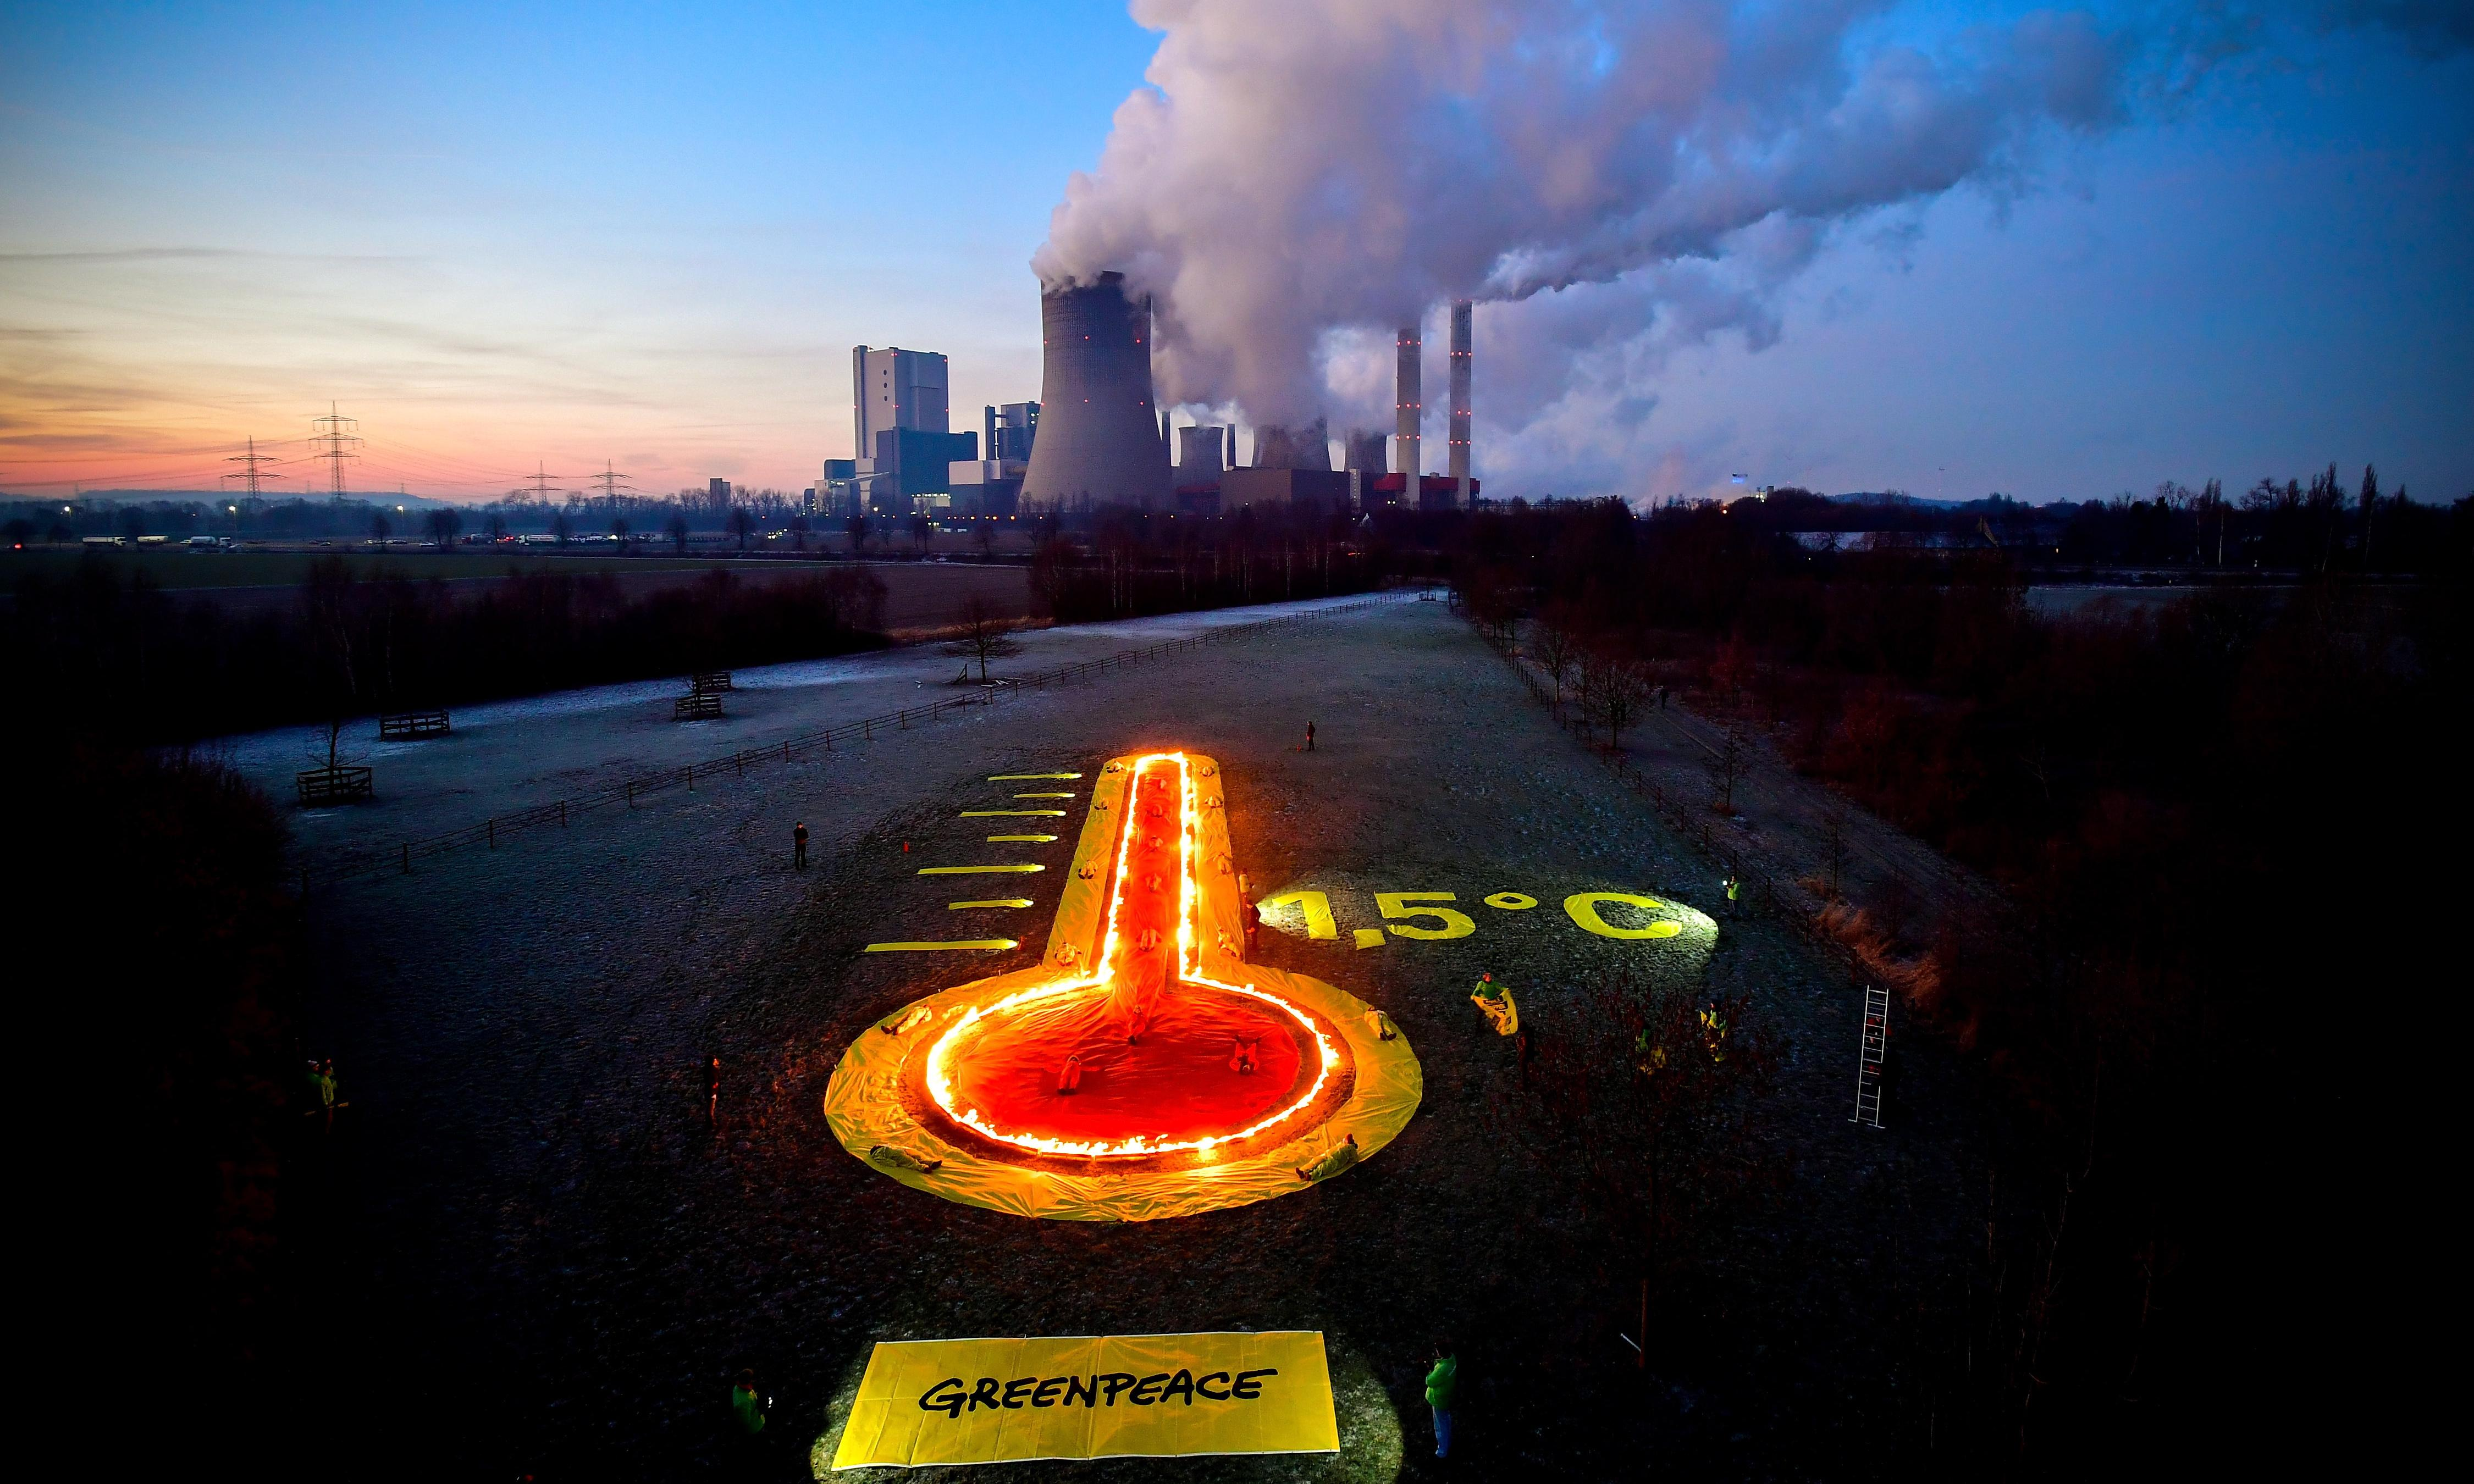 World's biggest investor accused of dragging feet on climate crisis